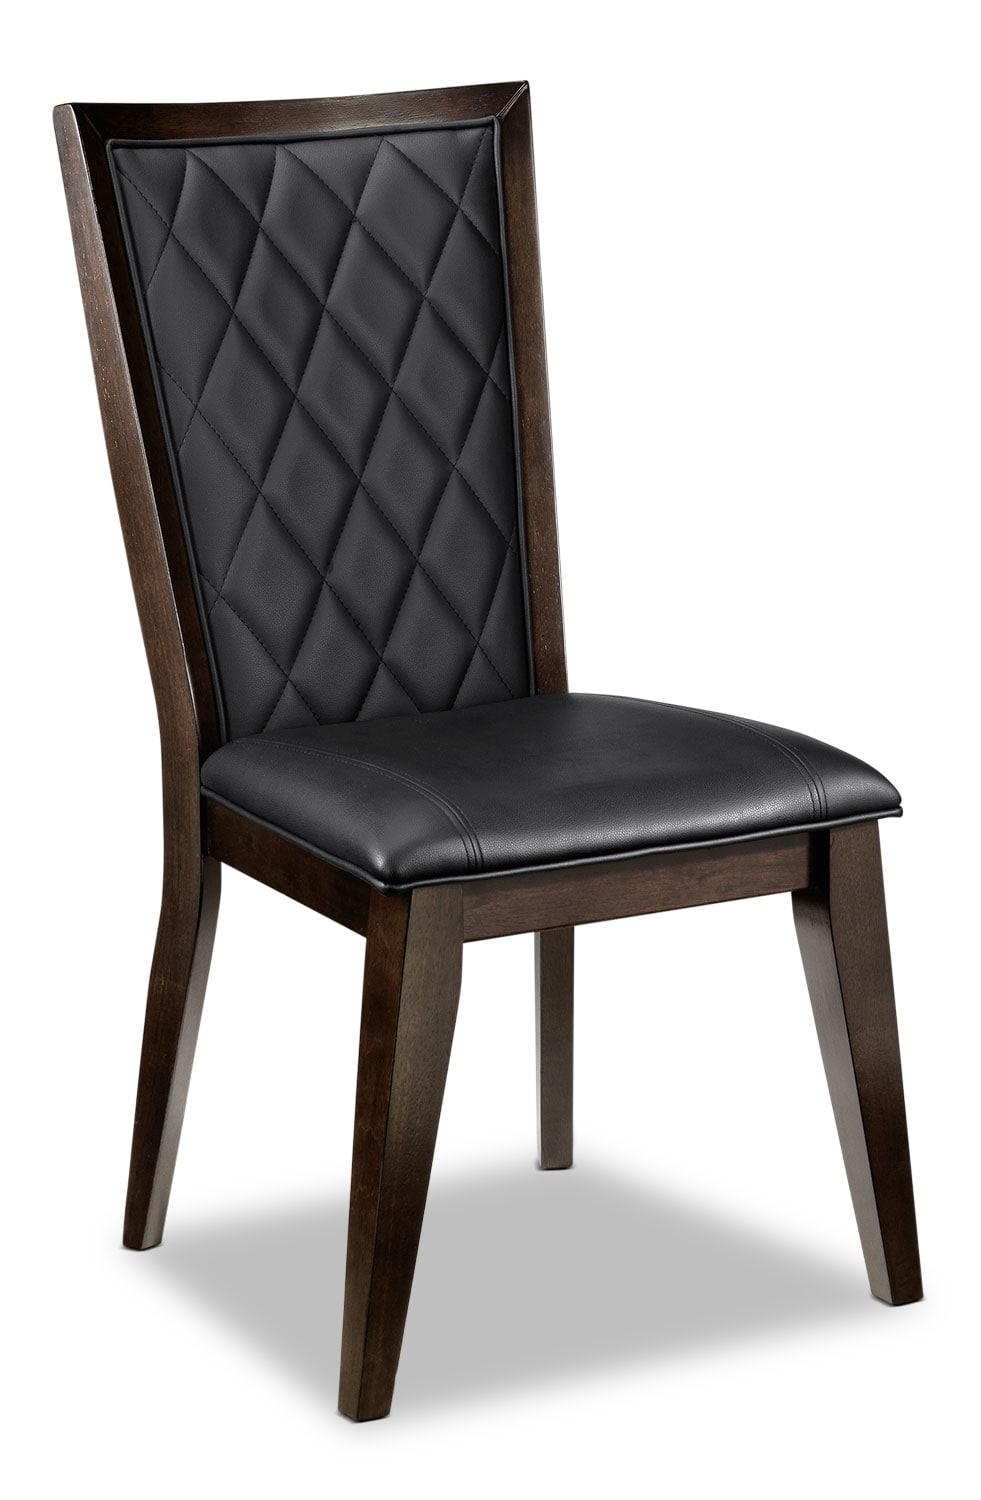 Dining Room Furniture - Atlanta Side Chair